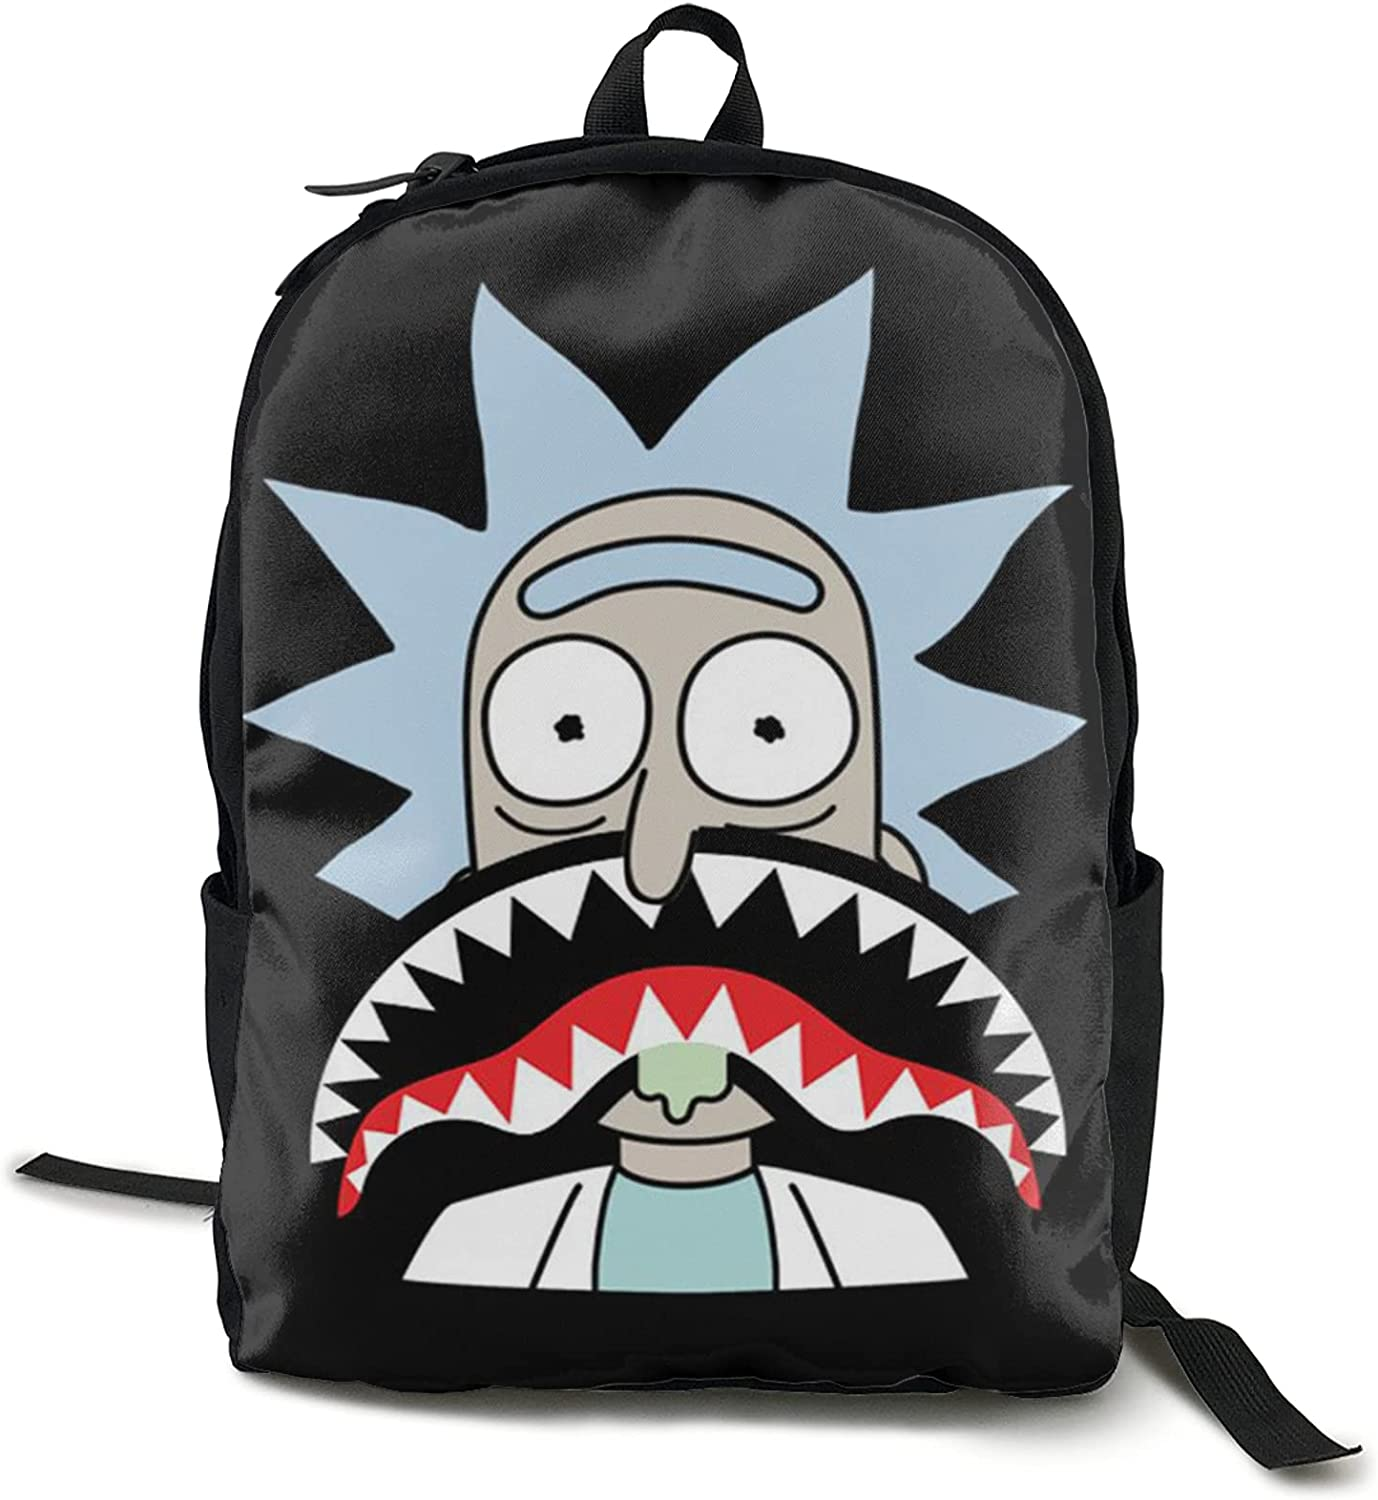 Unisex Bookbag School Bags Travel Ipad S Max 41% OFF Cash special price Laptop Durable Backpack